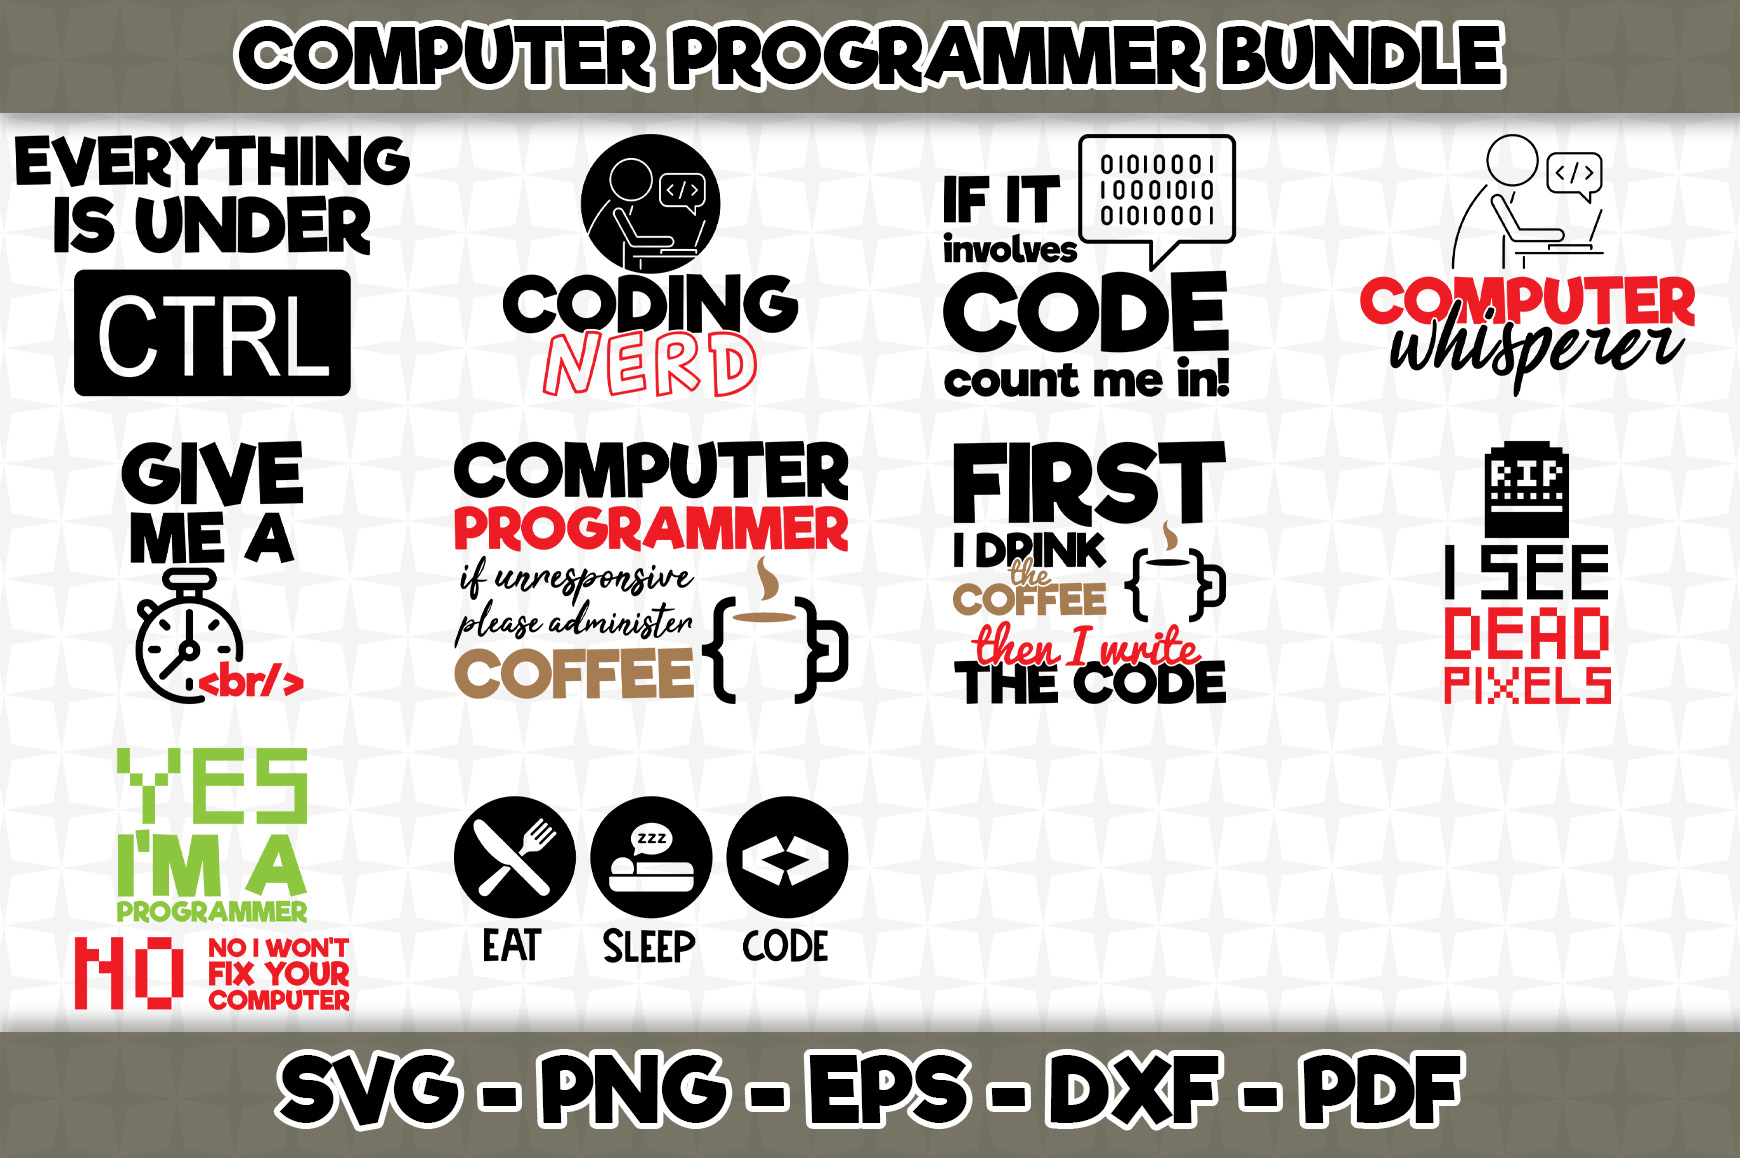 Computer Programmer Bundle 10 Designs Graphic By Svgexpress